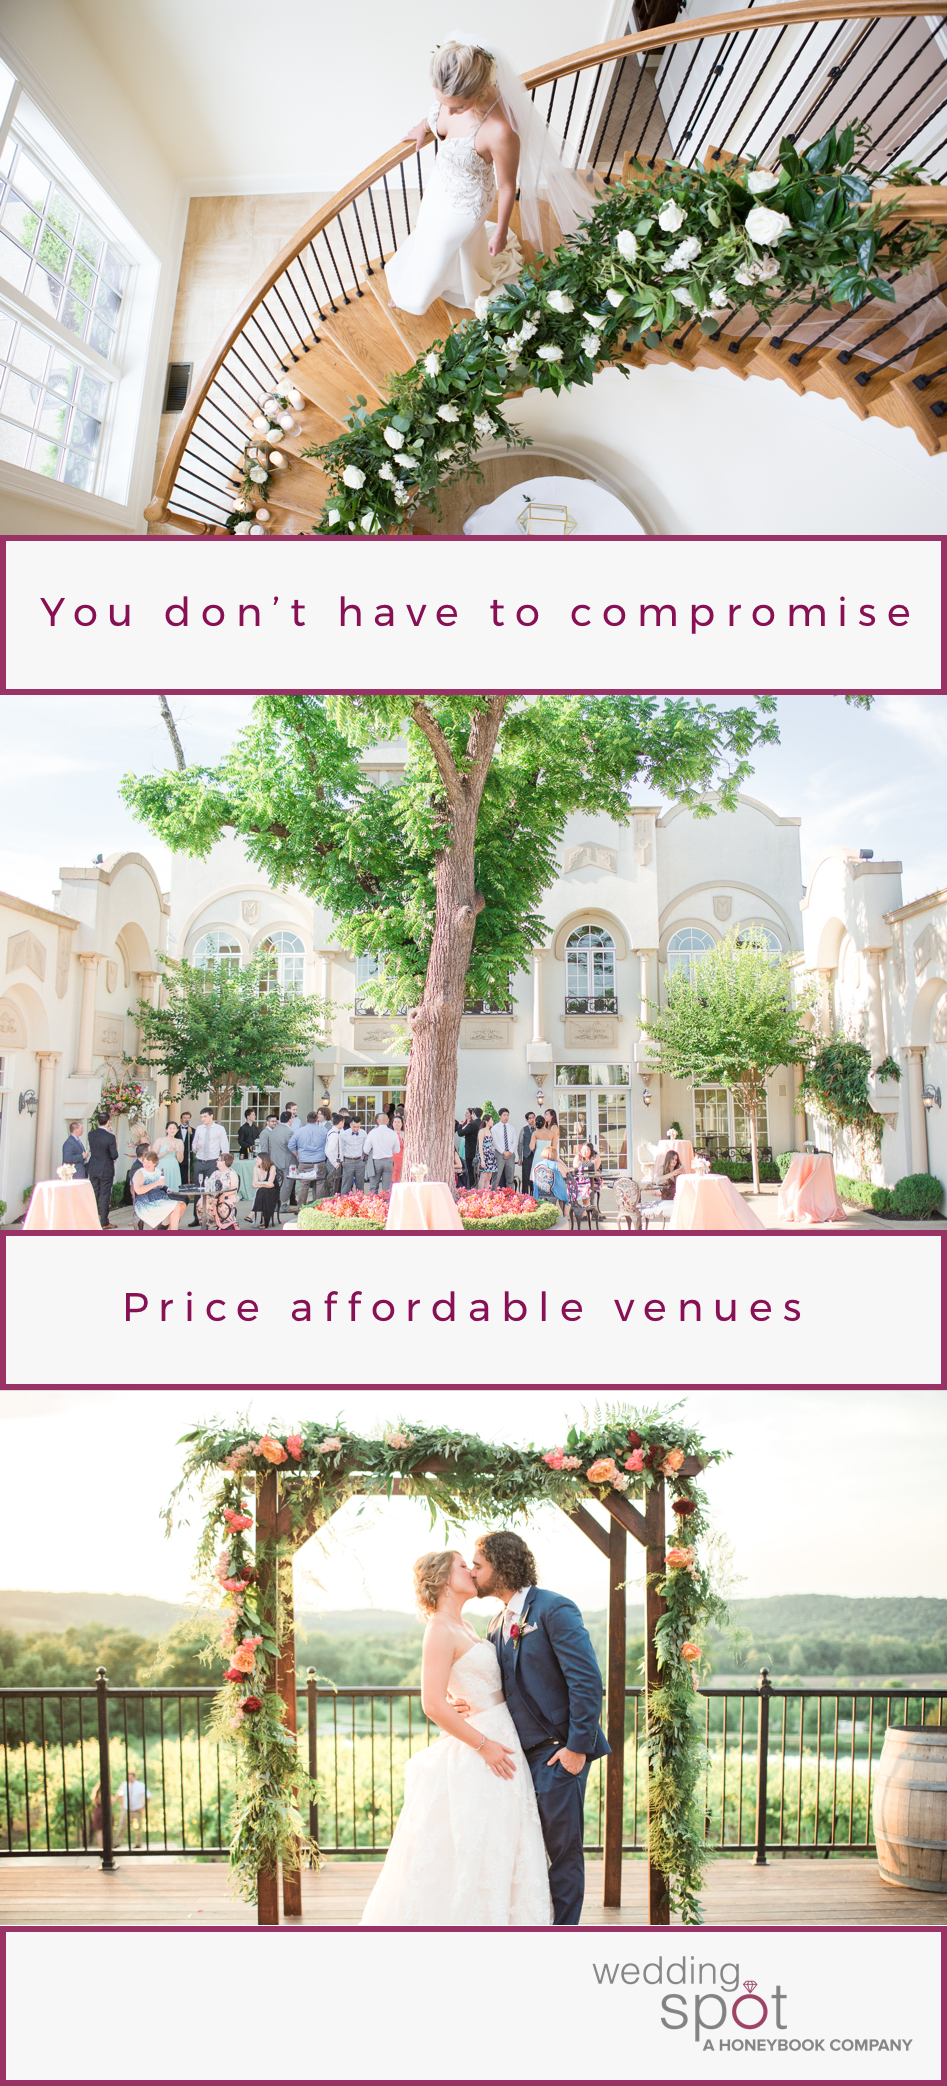 Price And Compare Affordable Venues In Your Area Wedding Spot Is The First Online Site That All Wedding Venues Bay Area Wedding Venues Arizona Wedding Venues